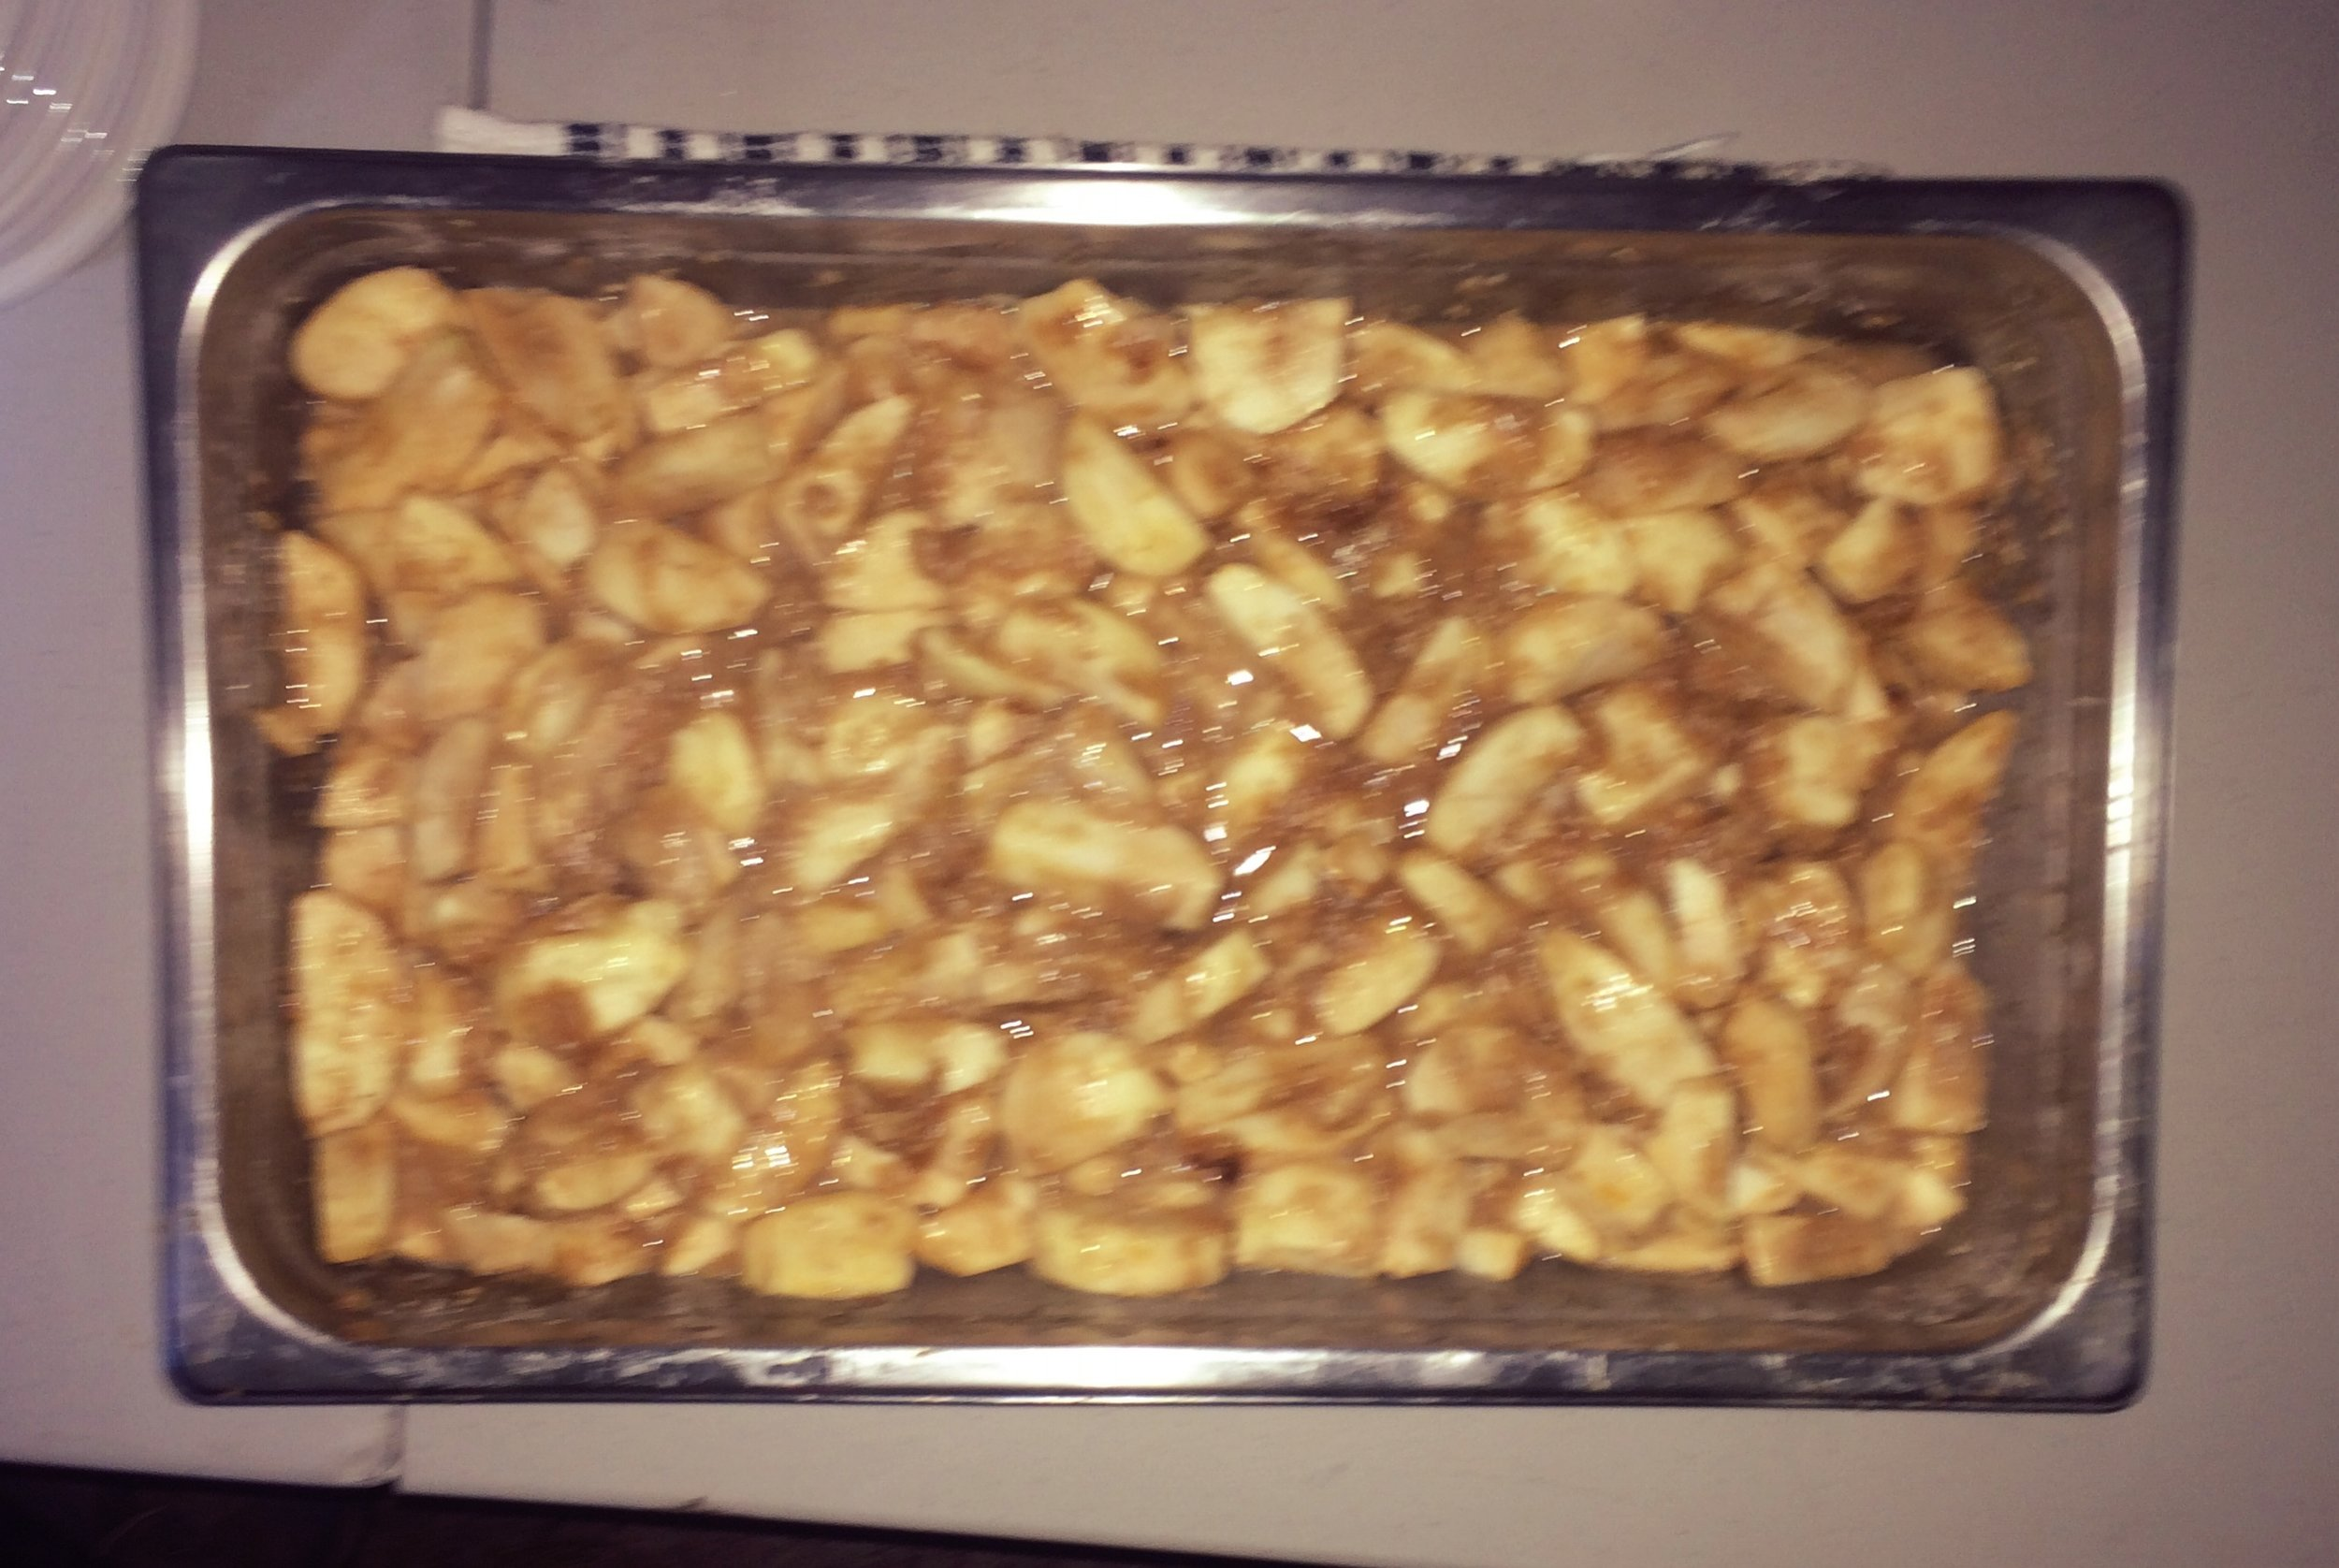 Bakes apples in a cinnamon syrup. Unfortunately the picture doesn't do is justice.